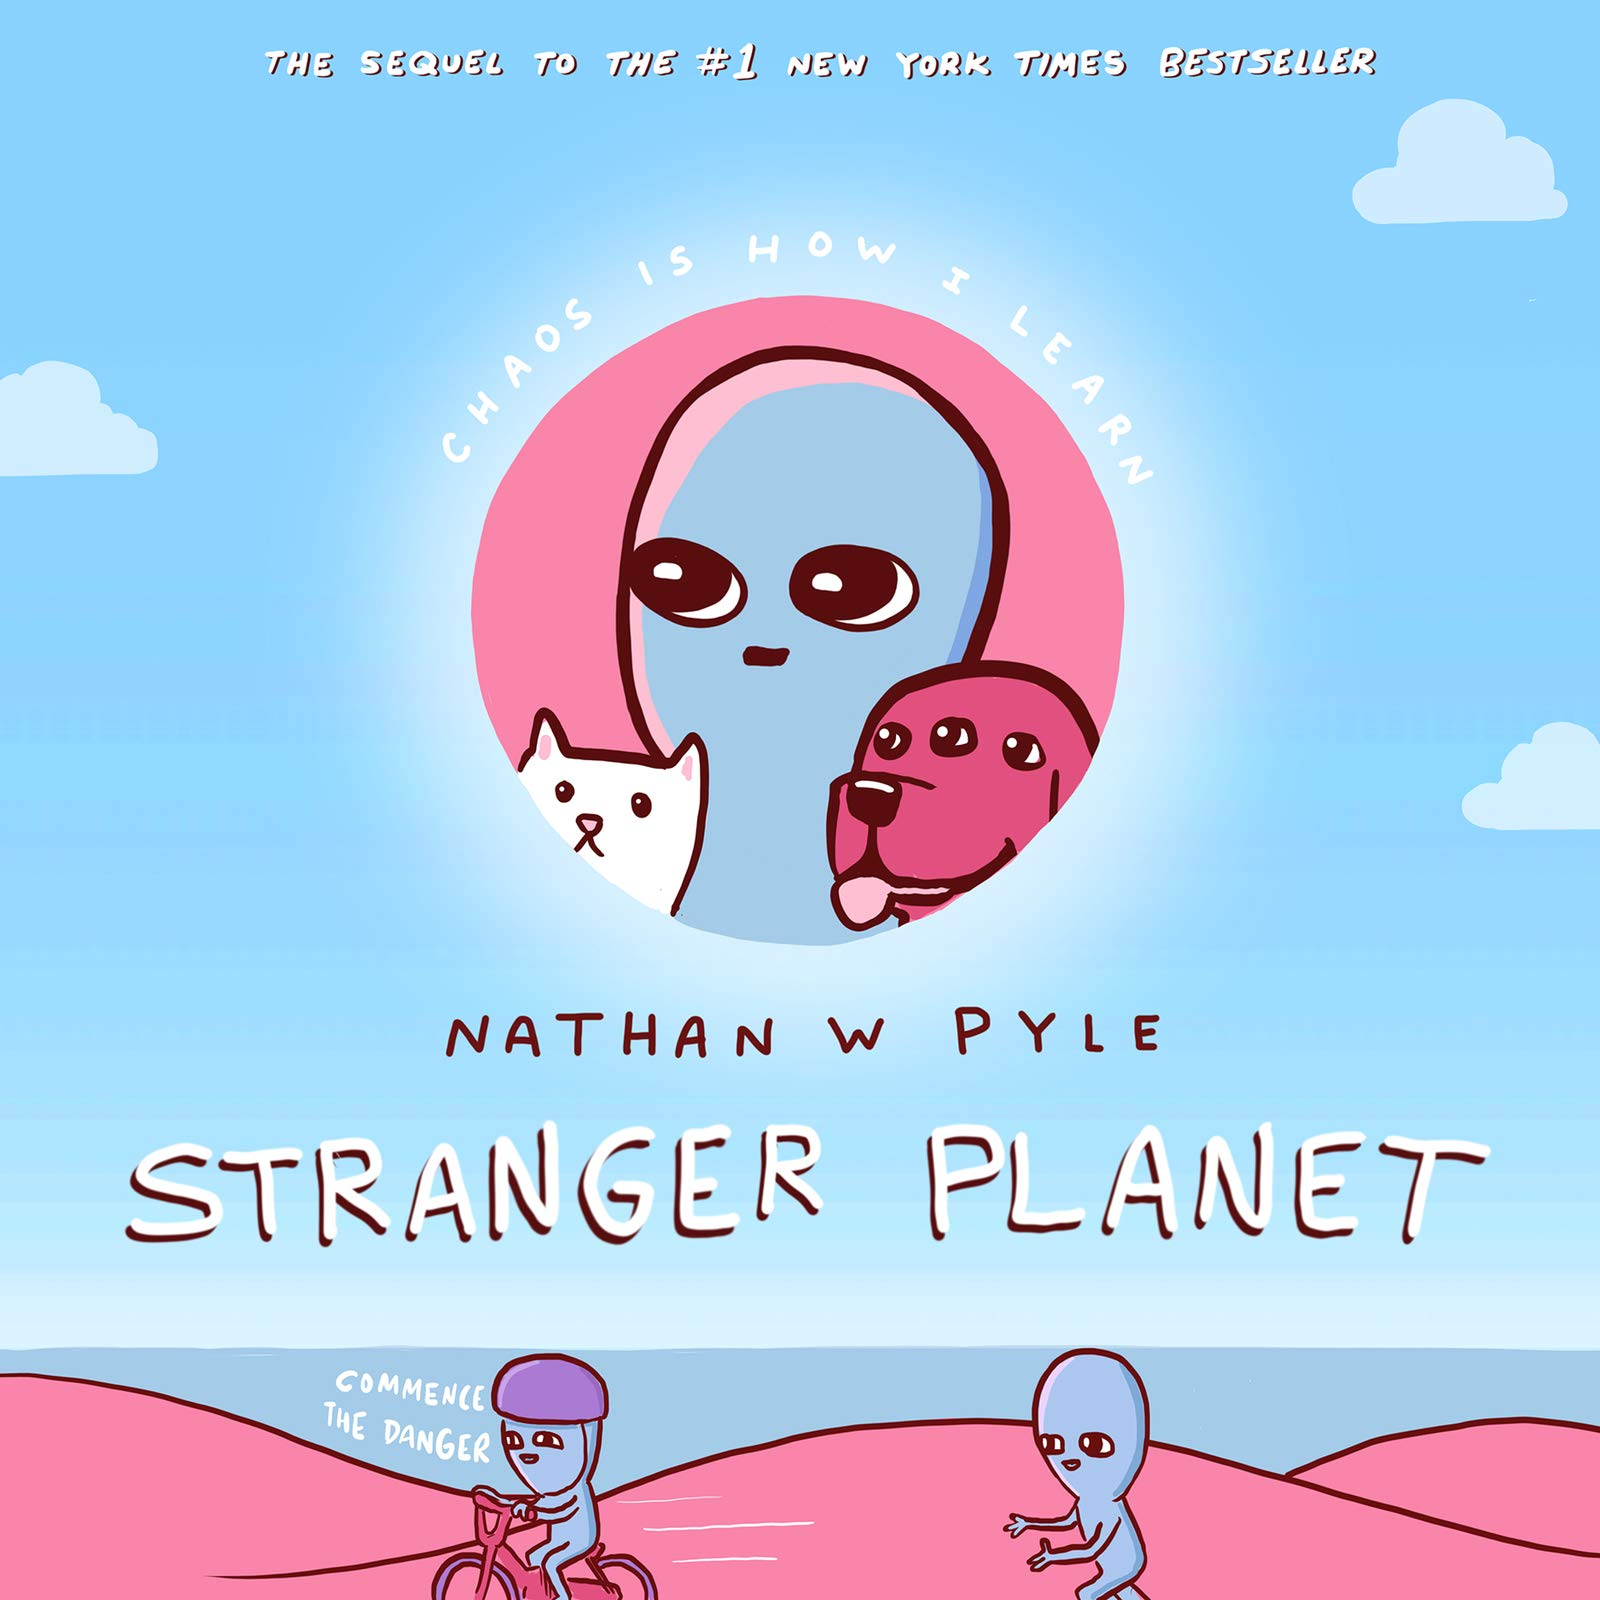 Stranger Planet by Nathan W. Pyle